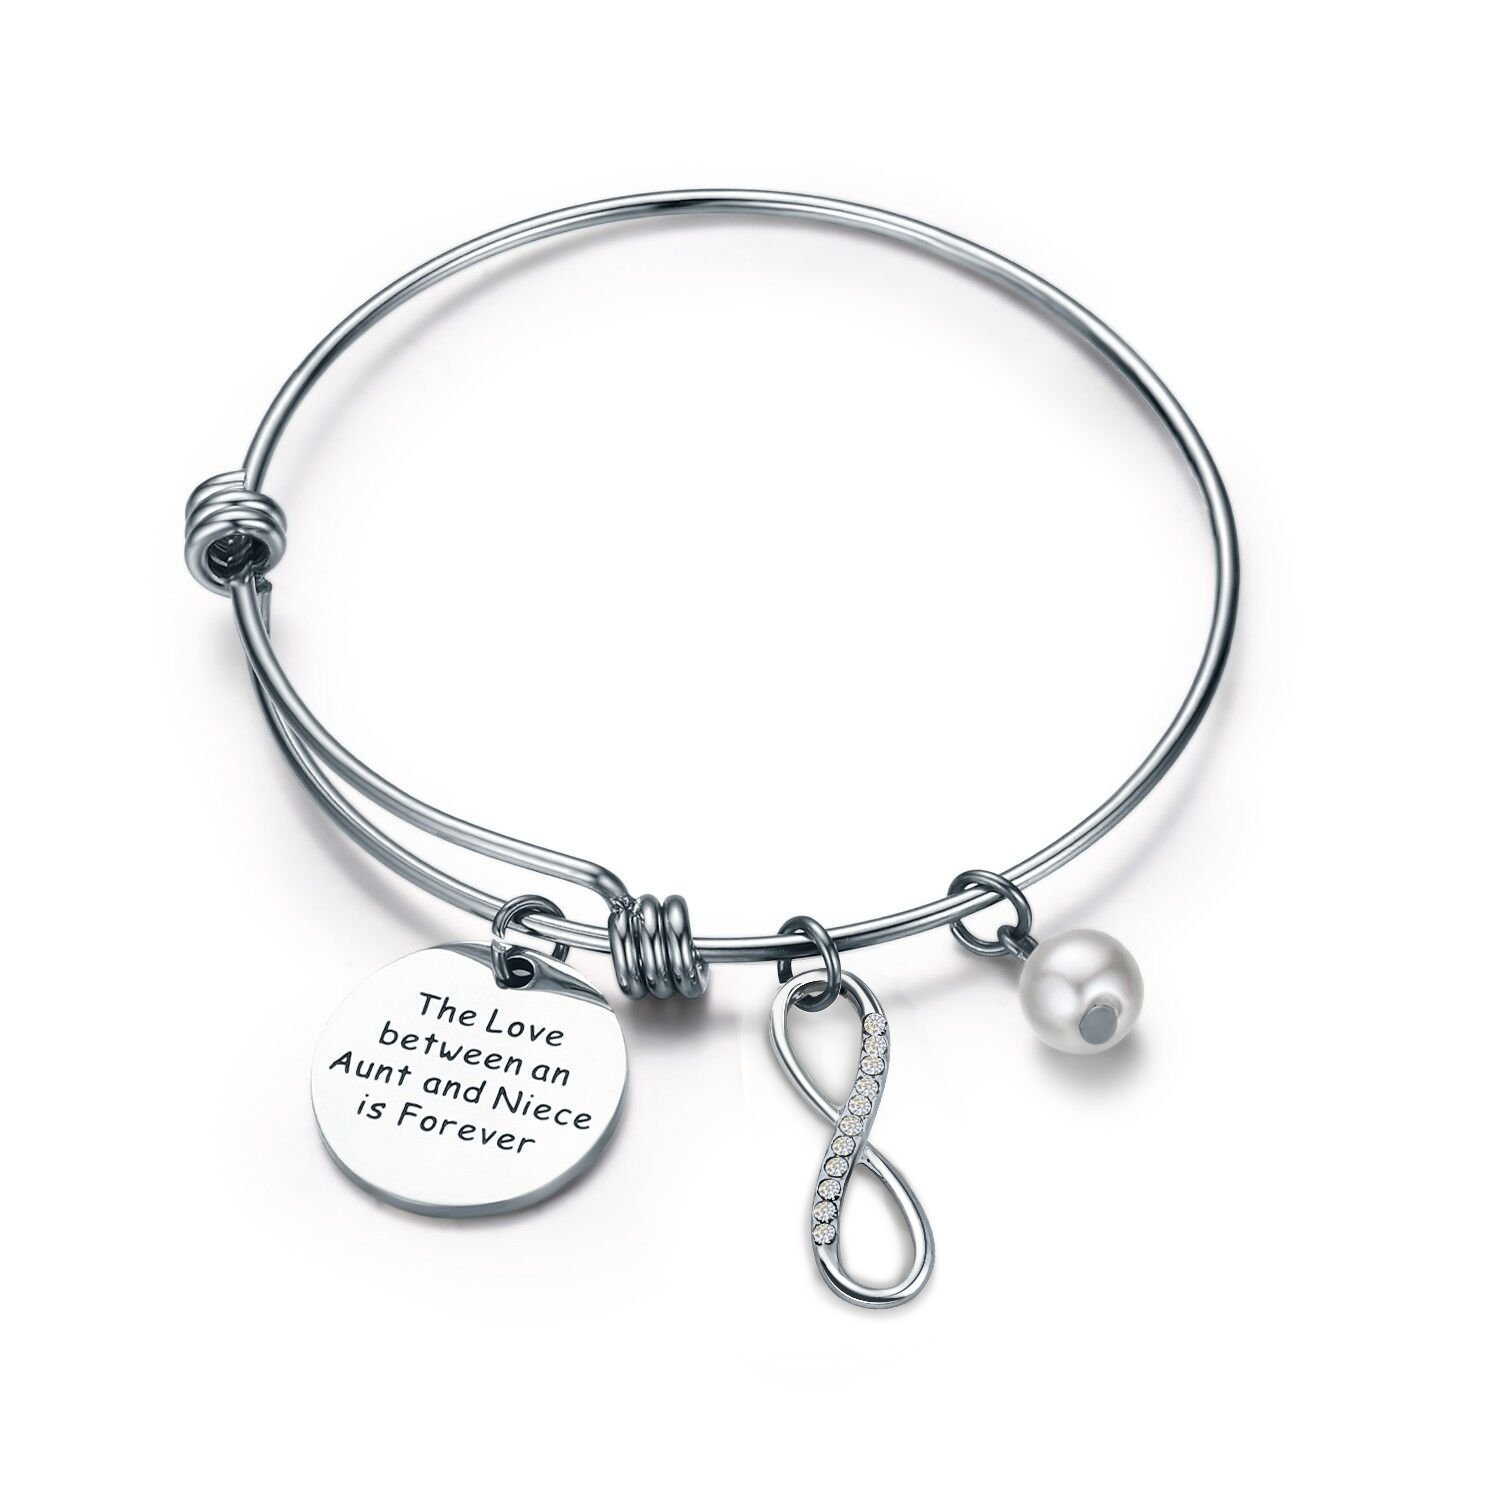 MYOSPARK Niece Bracelet Aunt Gifts The Love Between An Aunt and Niece is Forever Bracelet with Infinity Charm (Bracelet)